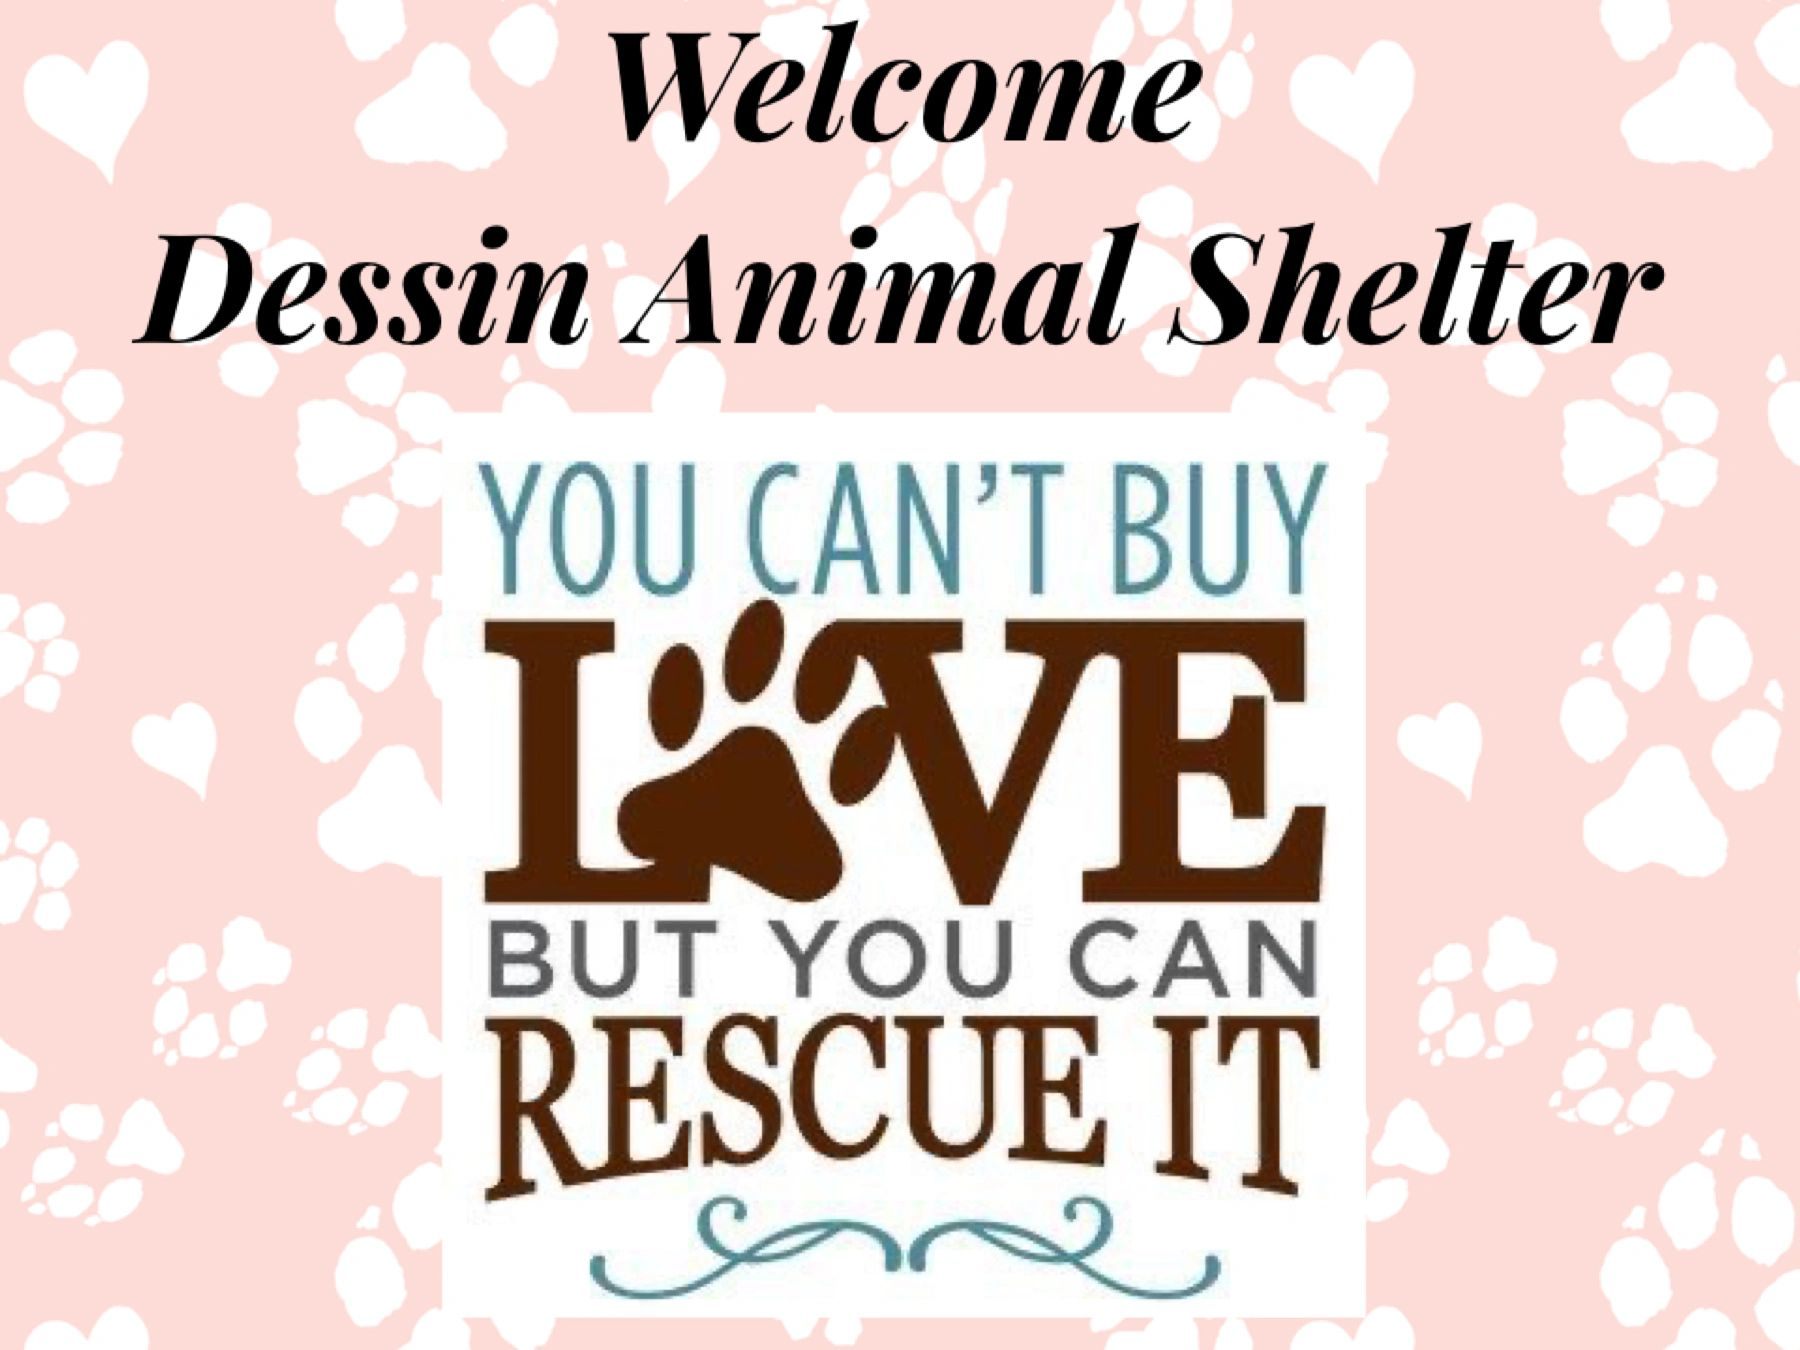 Dessin Animal Shelter Pet Adoption Nonprofit